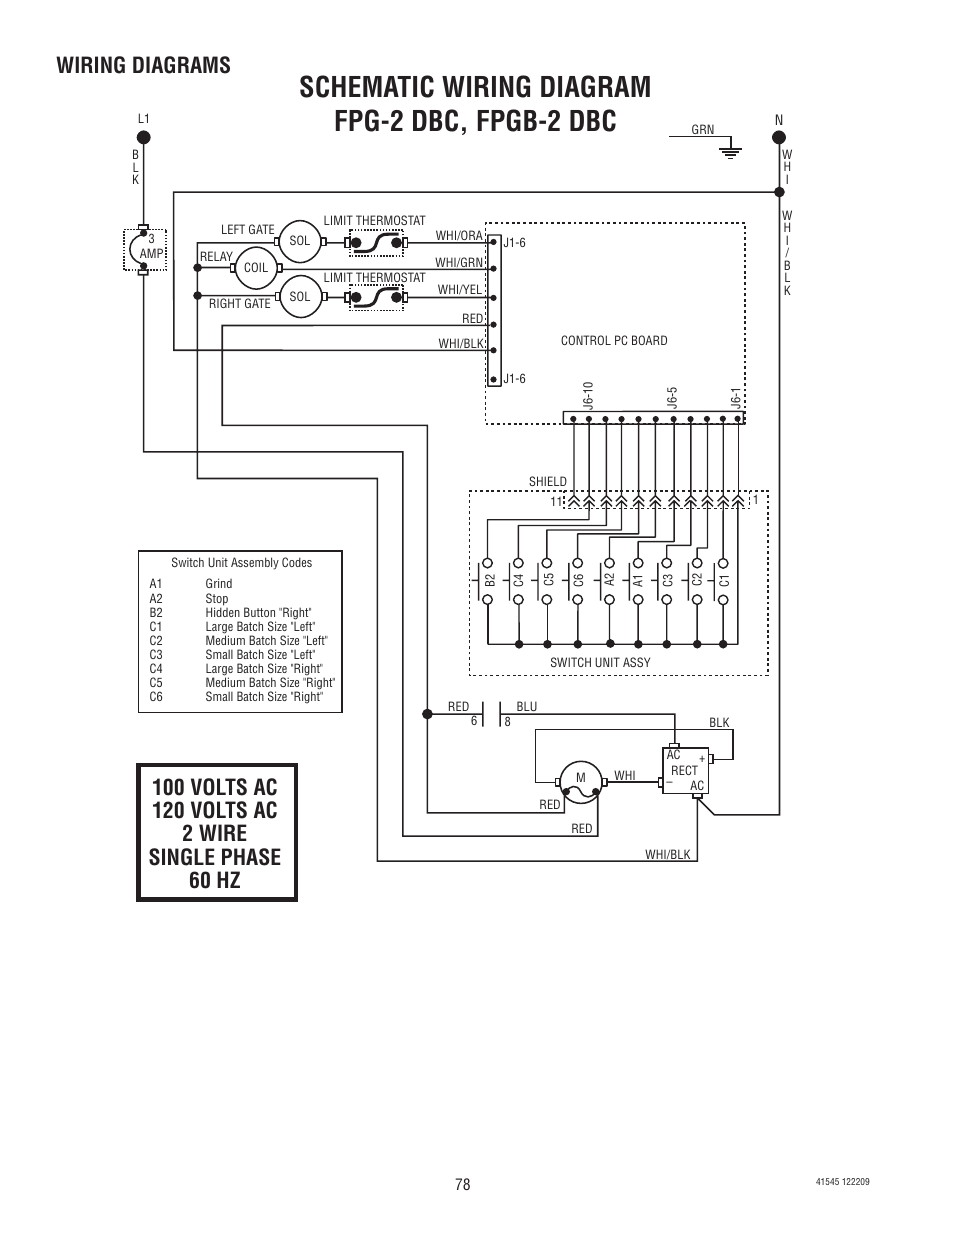 Bunn Wiring Diagram Block And Schematic Diagrams \u2022 350s Bunn Coffee  Maker Wiring Diagram